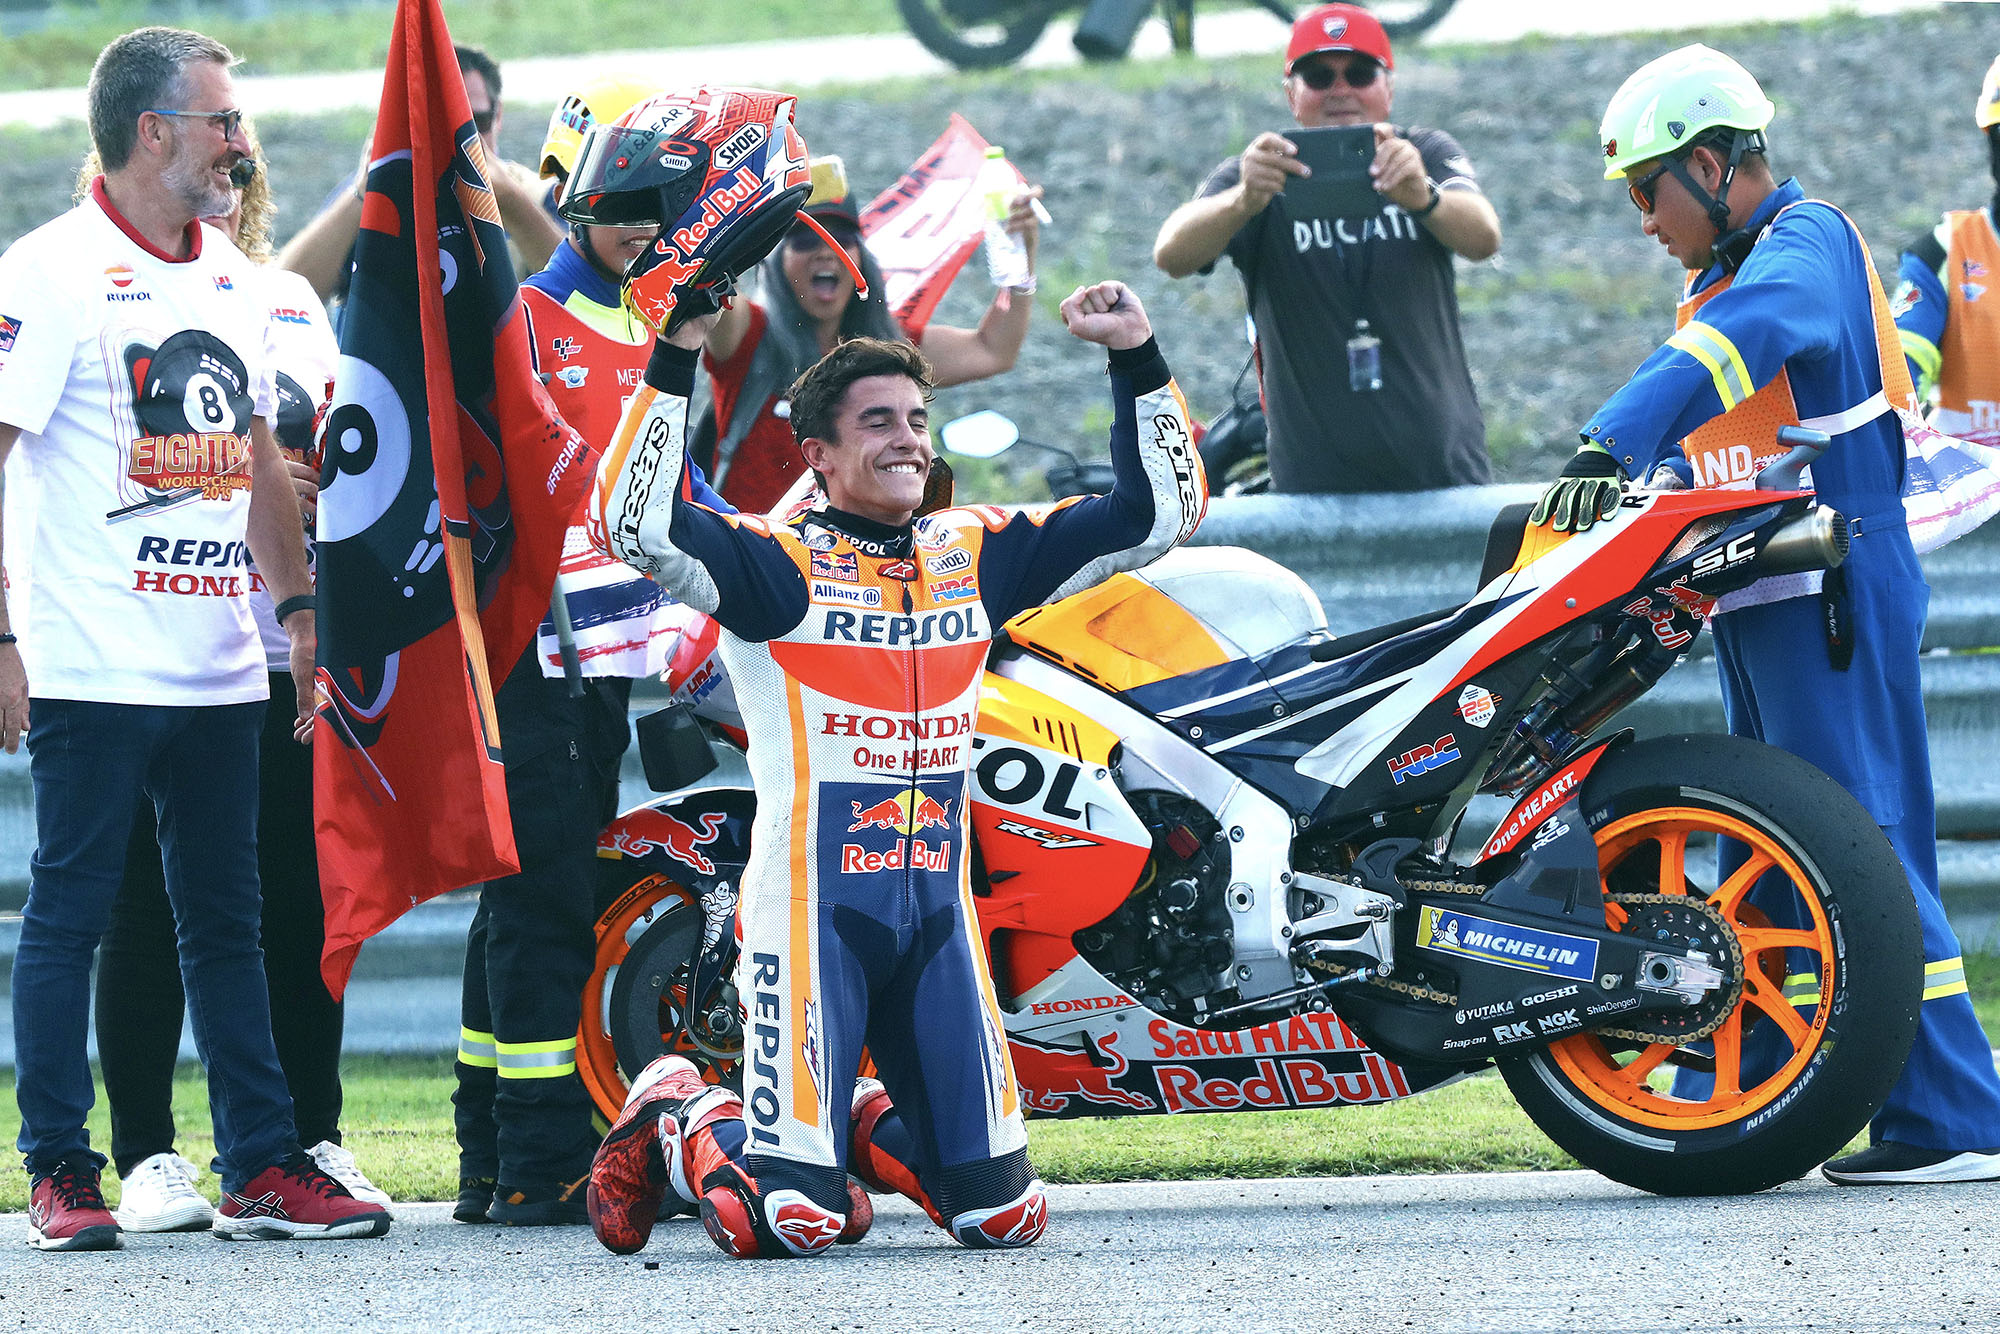 Marc Marquez on his knees after winning his sixth MotoGP championship at the 2019 Thailand Grand Prix